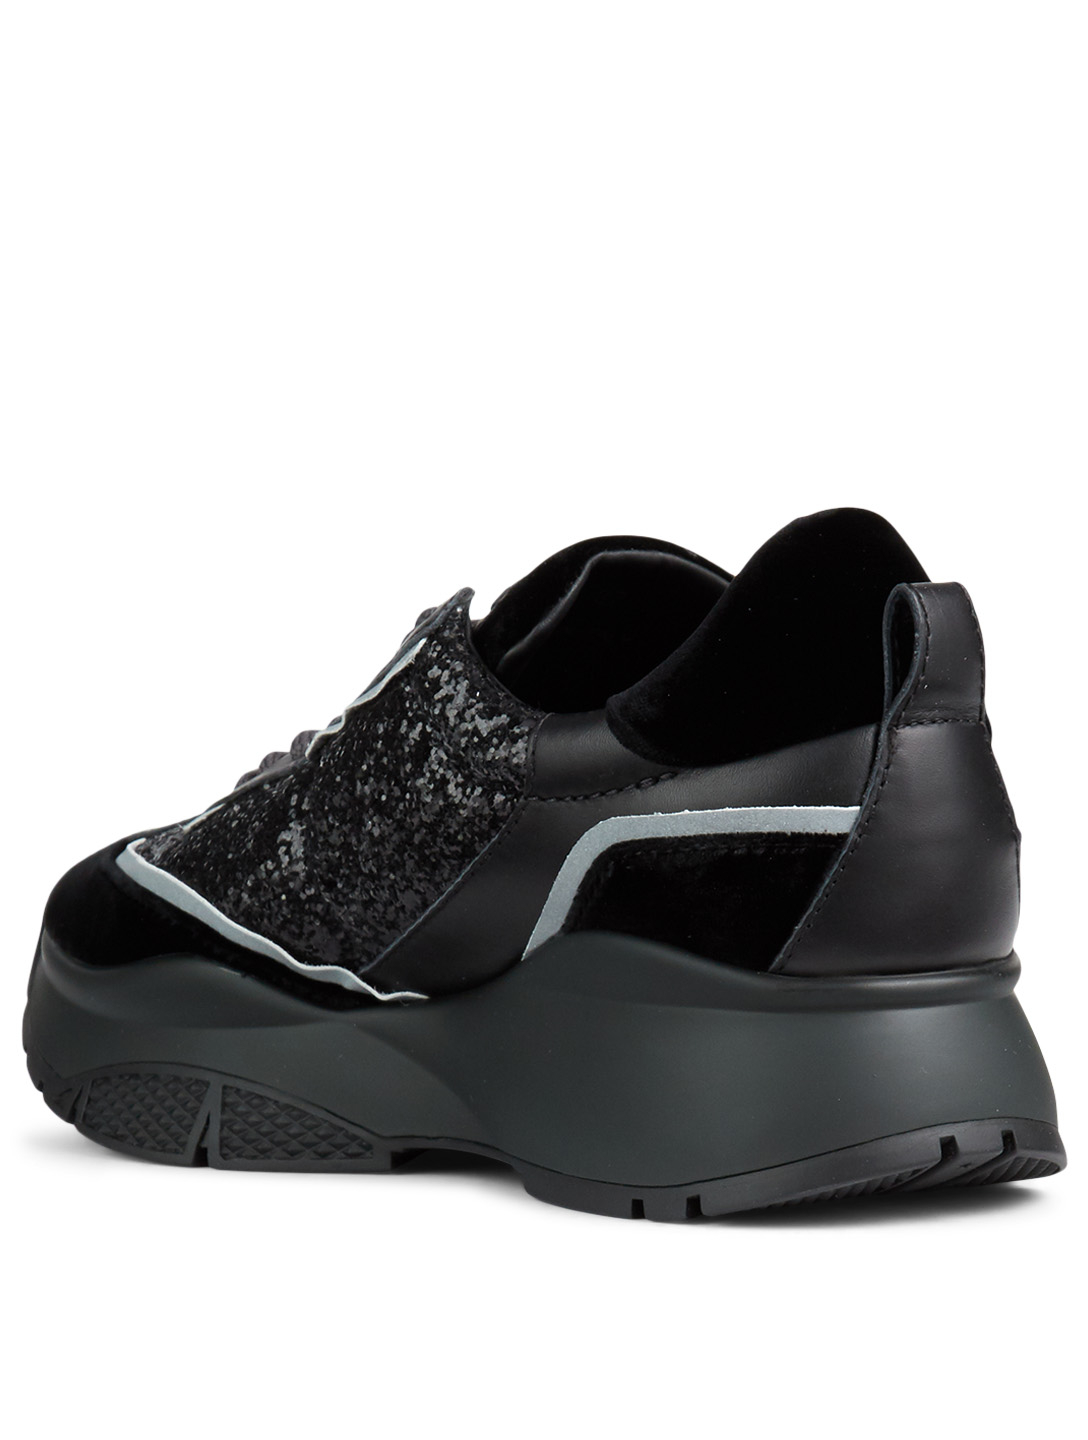 JIMMY CHOO Raine Velvet And Galactica Glitter Fabric Sneakers Women's Black